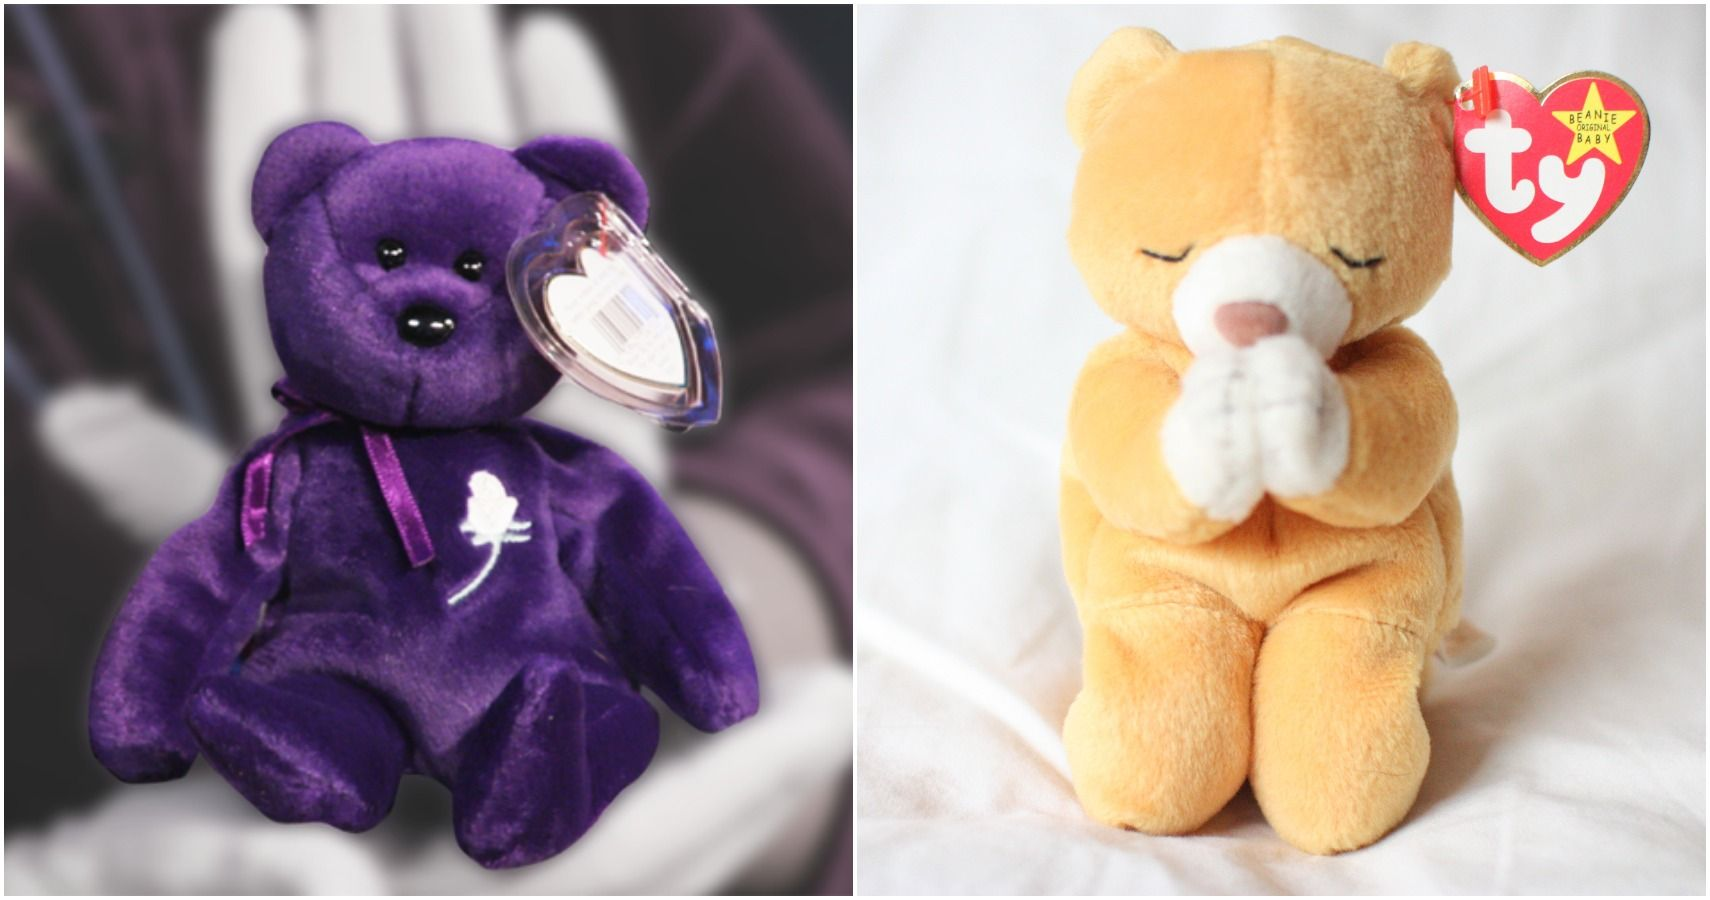 10 Beanie Babies That Seem Valuable But Are Worth Nothing